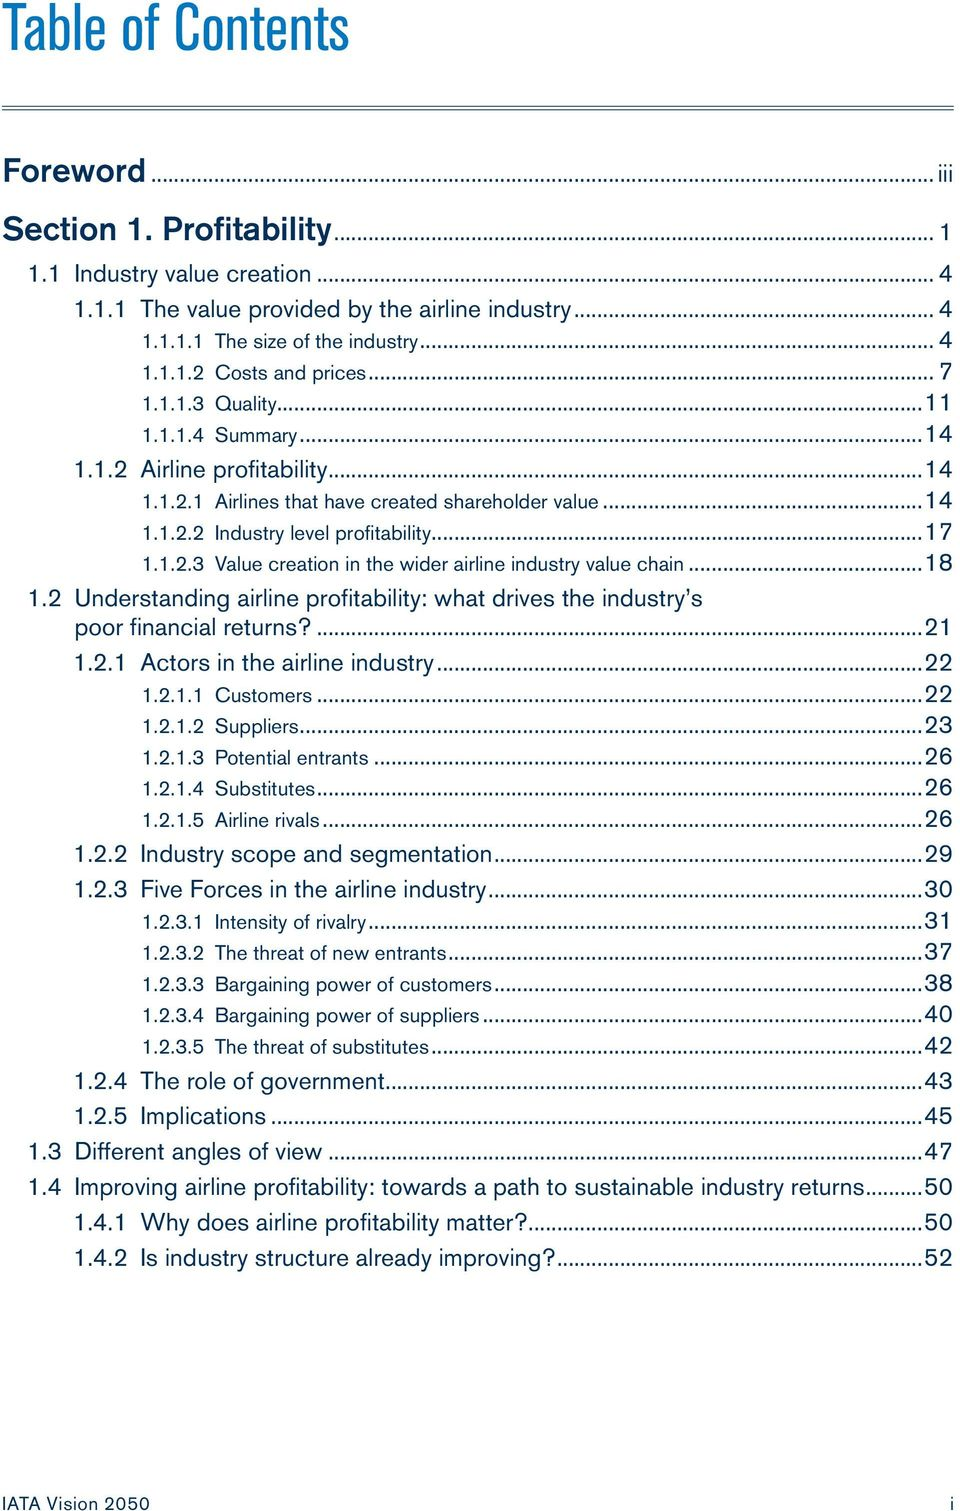 ..18 1.2 Understanding airline profitability: what drives the industry s poor financial returns?...21 1.2.1 Actors in the airline industry...22 1.2.1.1 Customers...22 1.2.1.2 Suppliers...23 1.2.1.3 Potential entrants.